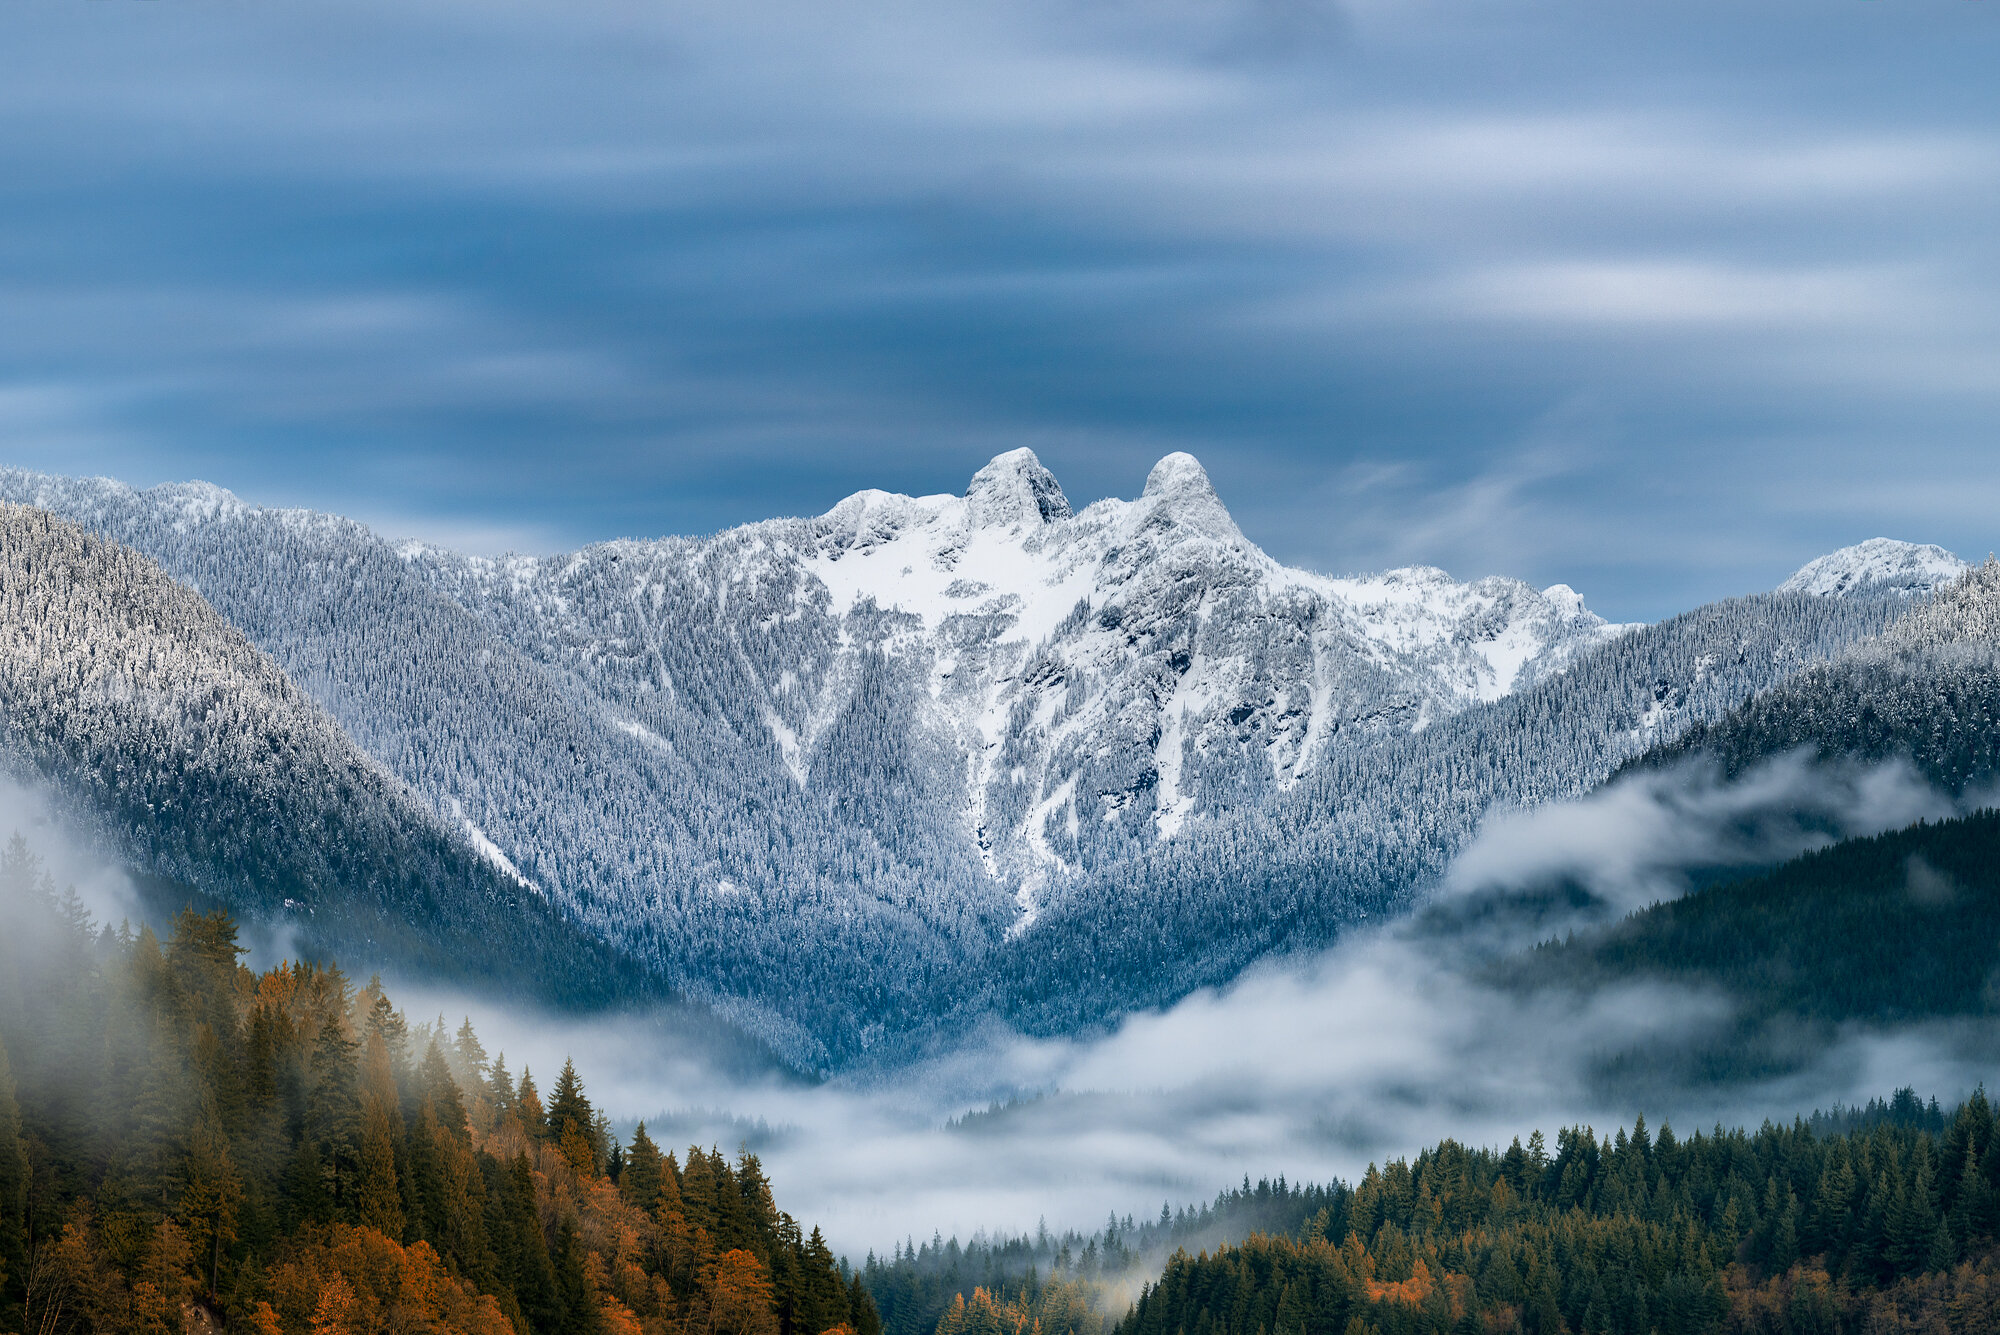 British Columbia Mountains: 'Freshly Dusted Lions'